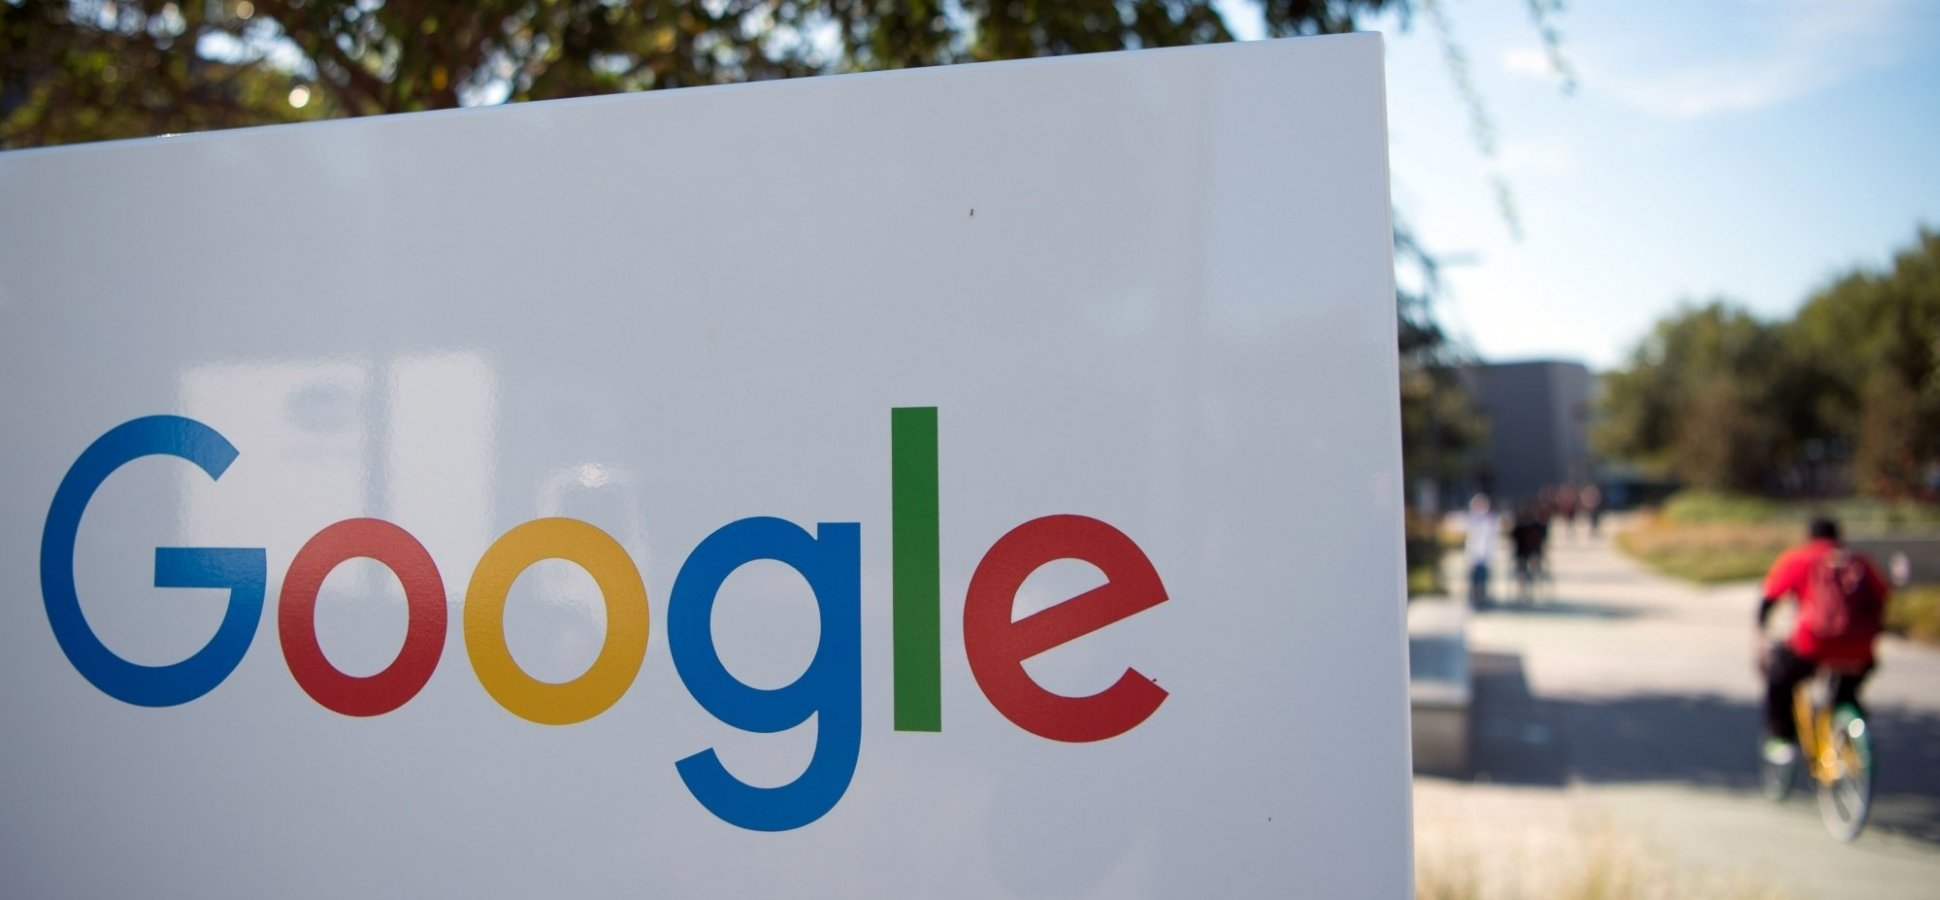 Everyone Hates Setting Goals. Here's How Google Makes It Easier for Its Employees